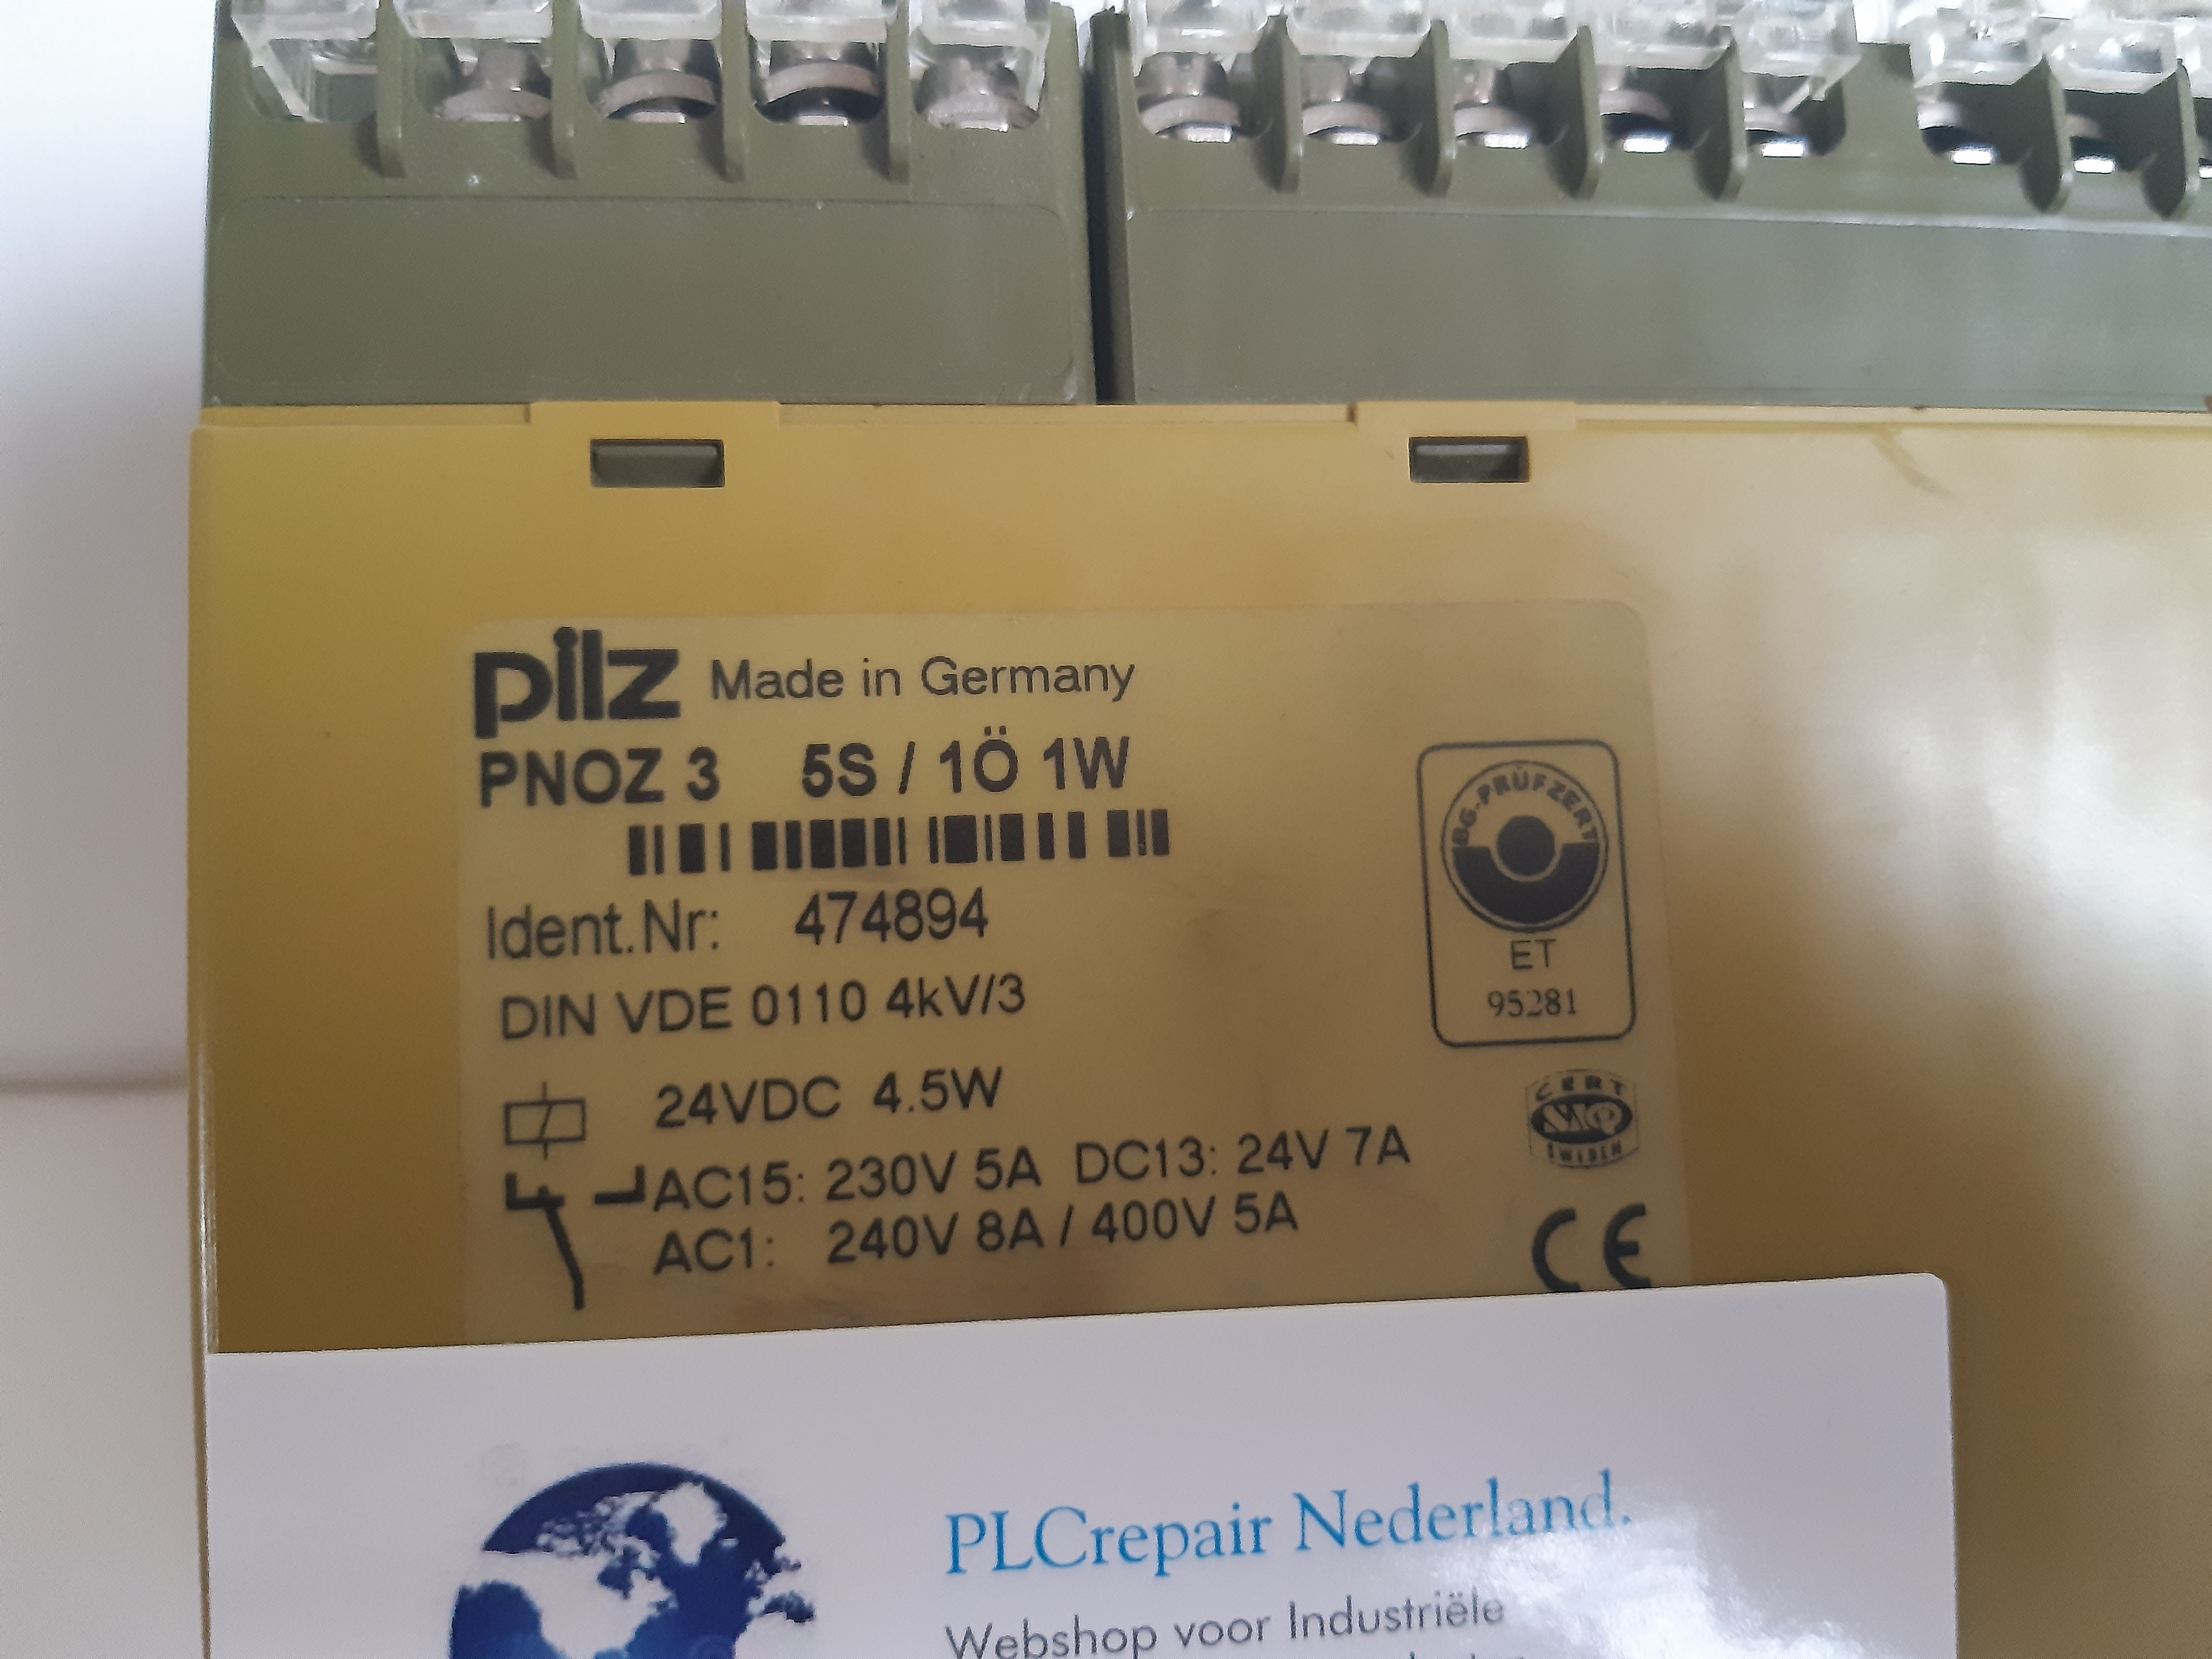 PNOZ 3 5S Pilz safety relay 24VDC Ident nr 474894.